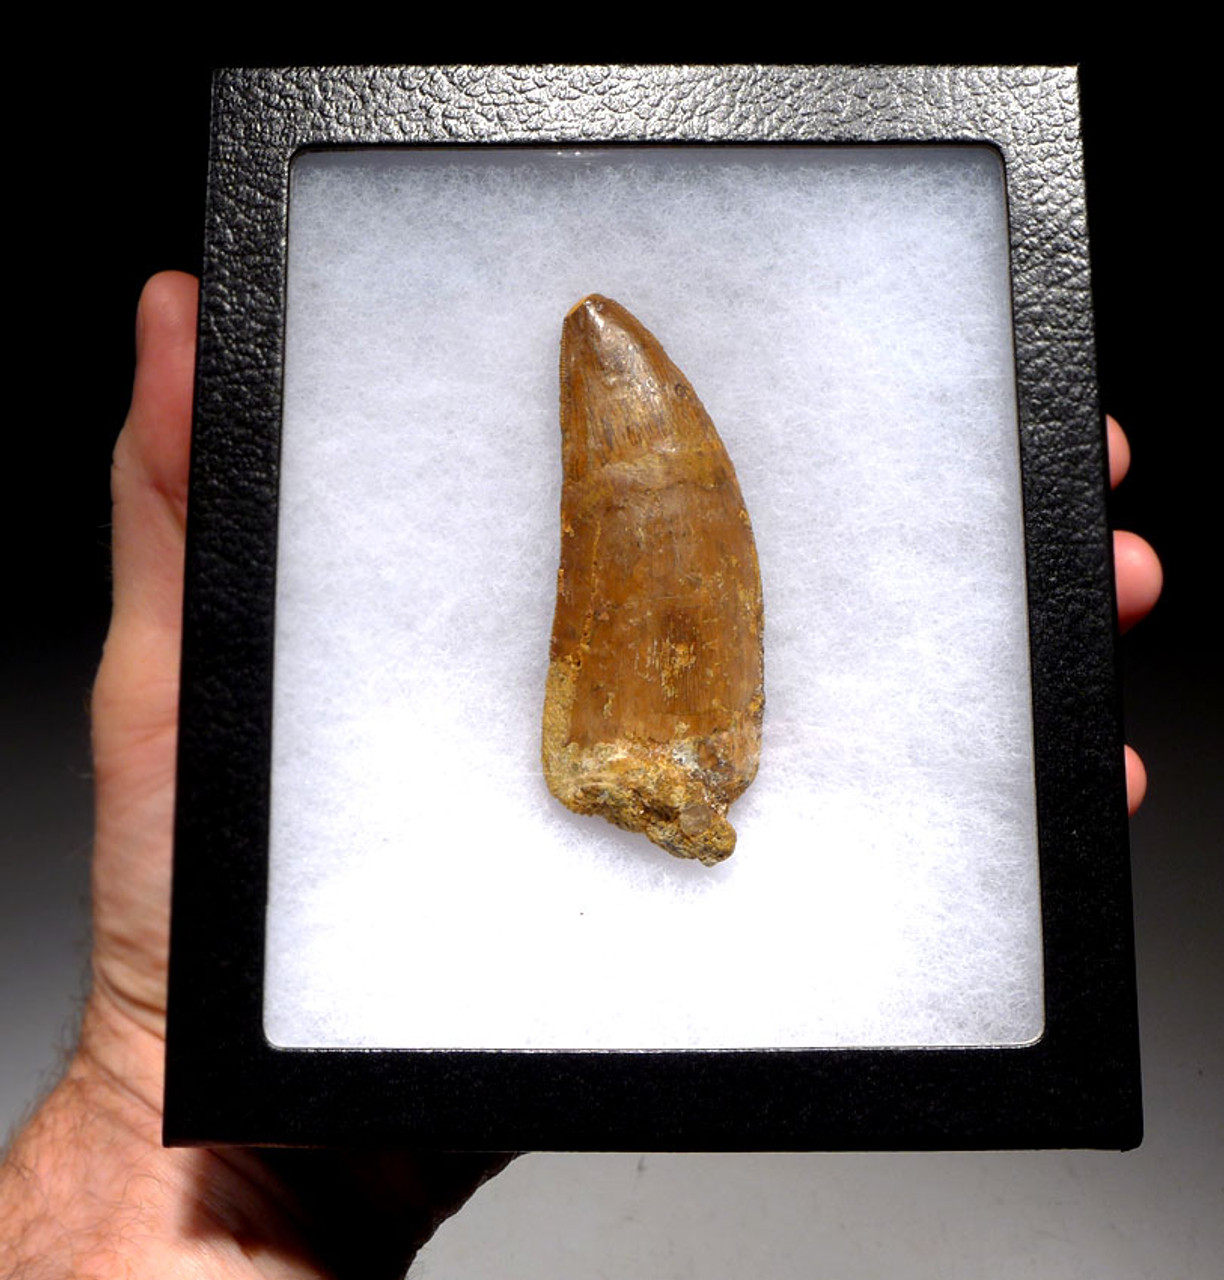 DT2-082 - LARGE 3.7 INCH FOSSIL TOOTH FROM THE LARGEST MEAT-EATING DINOSAUR CARCHARODONTOSAURUS